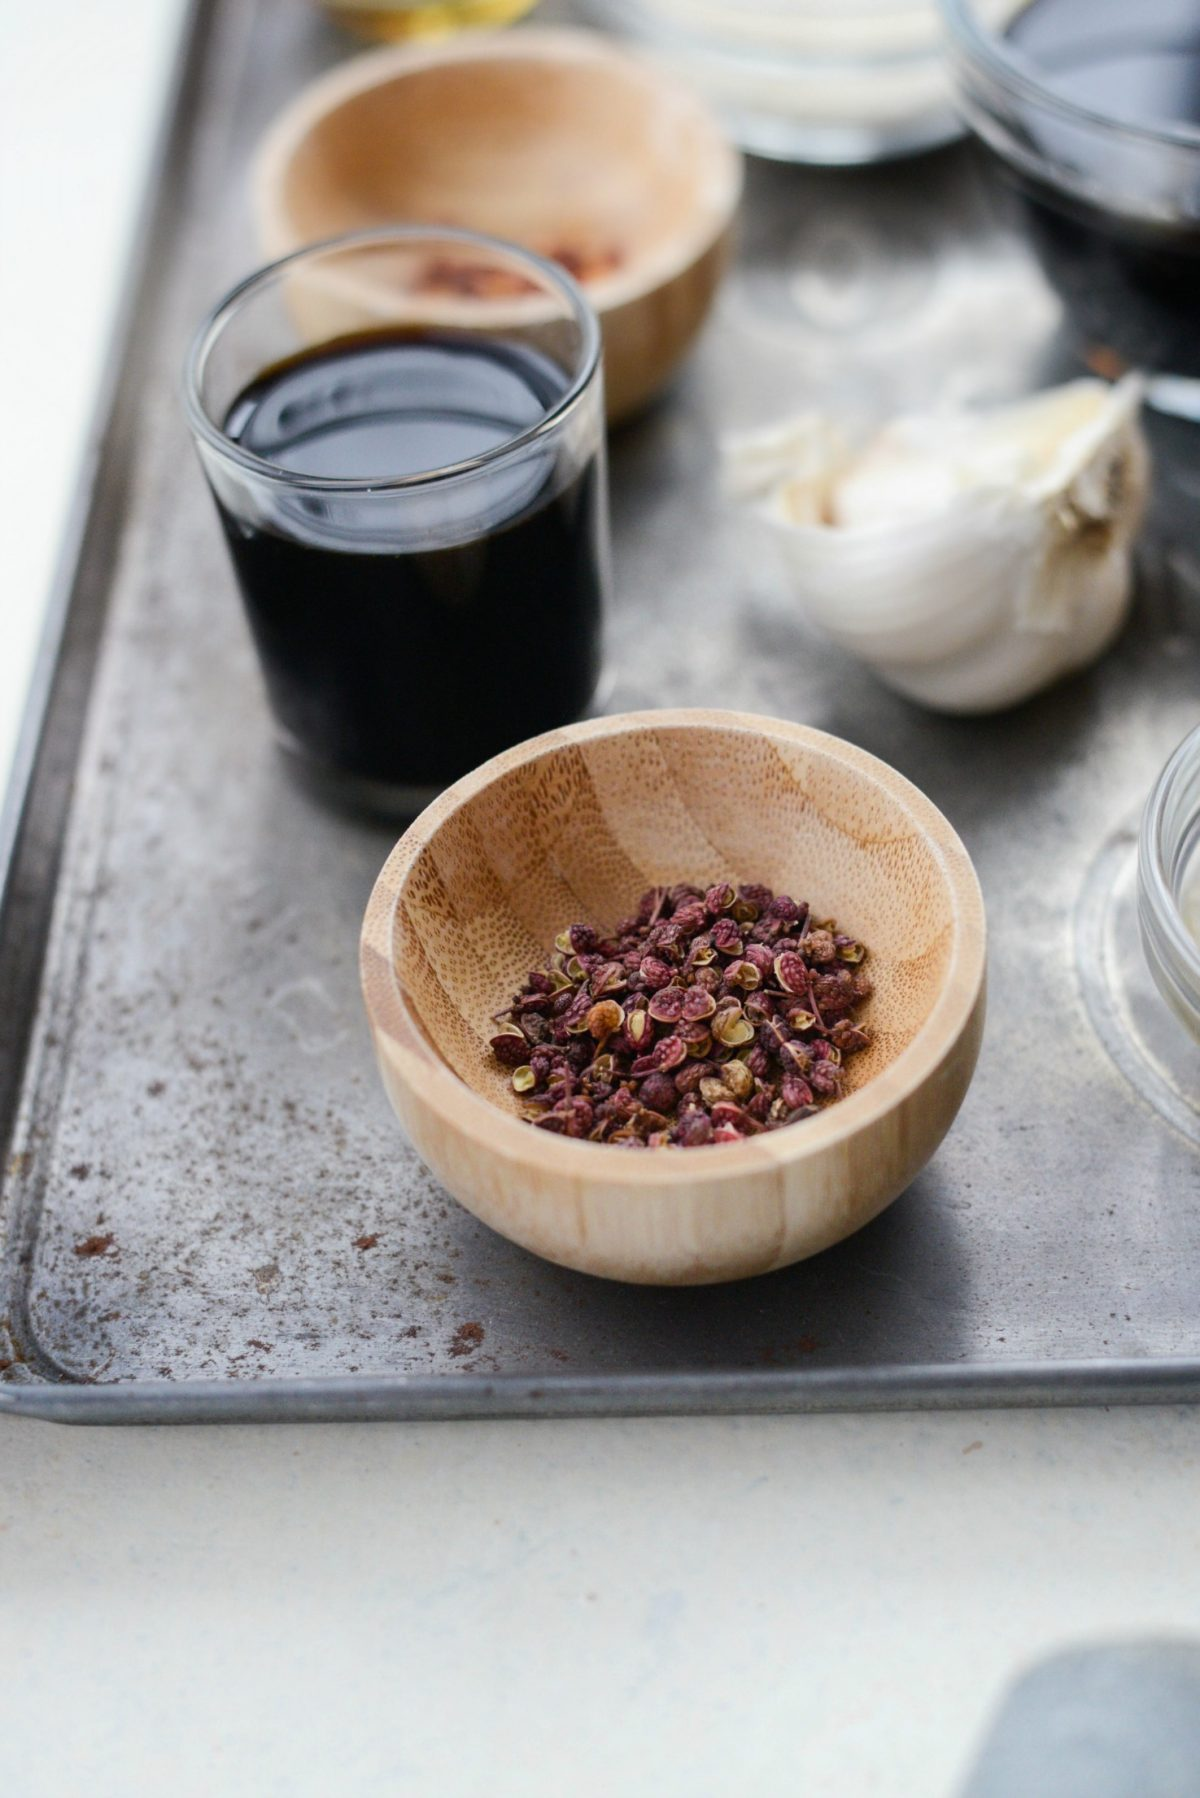 How To Prepare Szechuan Peppercorns l SimplyScratch.com #howto #prepare #szechuan #peppercorns #grind #spices #how #to